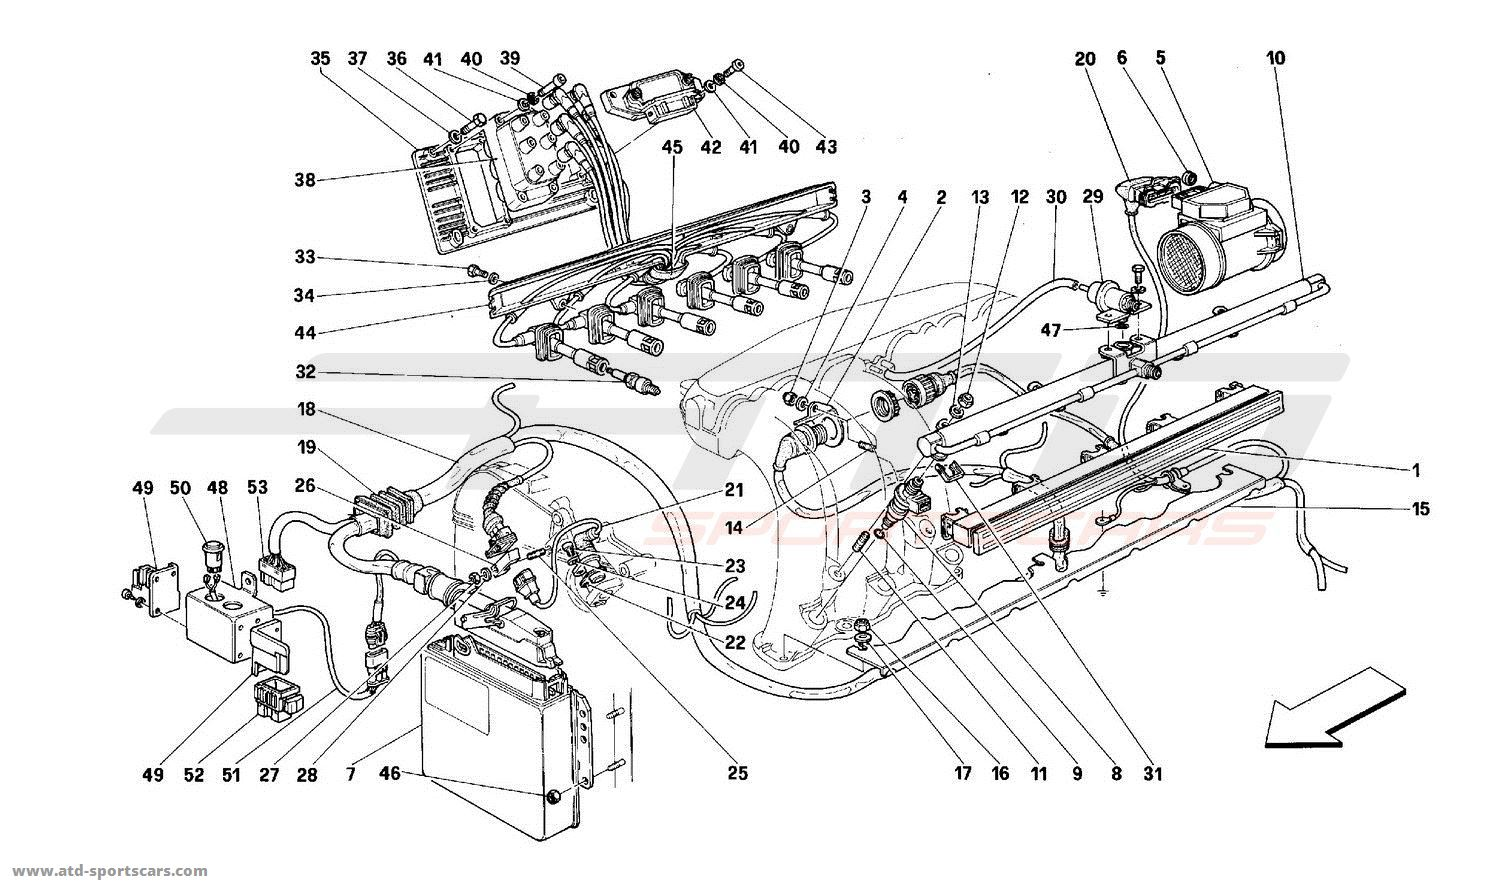 Ferrari 512M AIR INJECTION - IGNITION